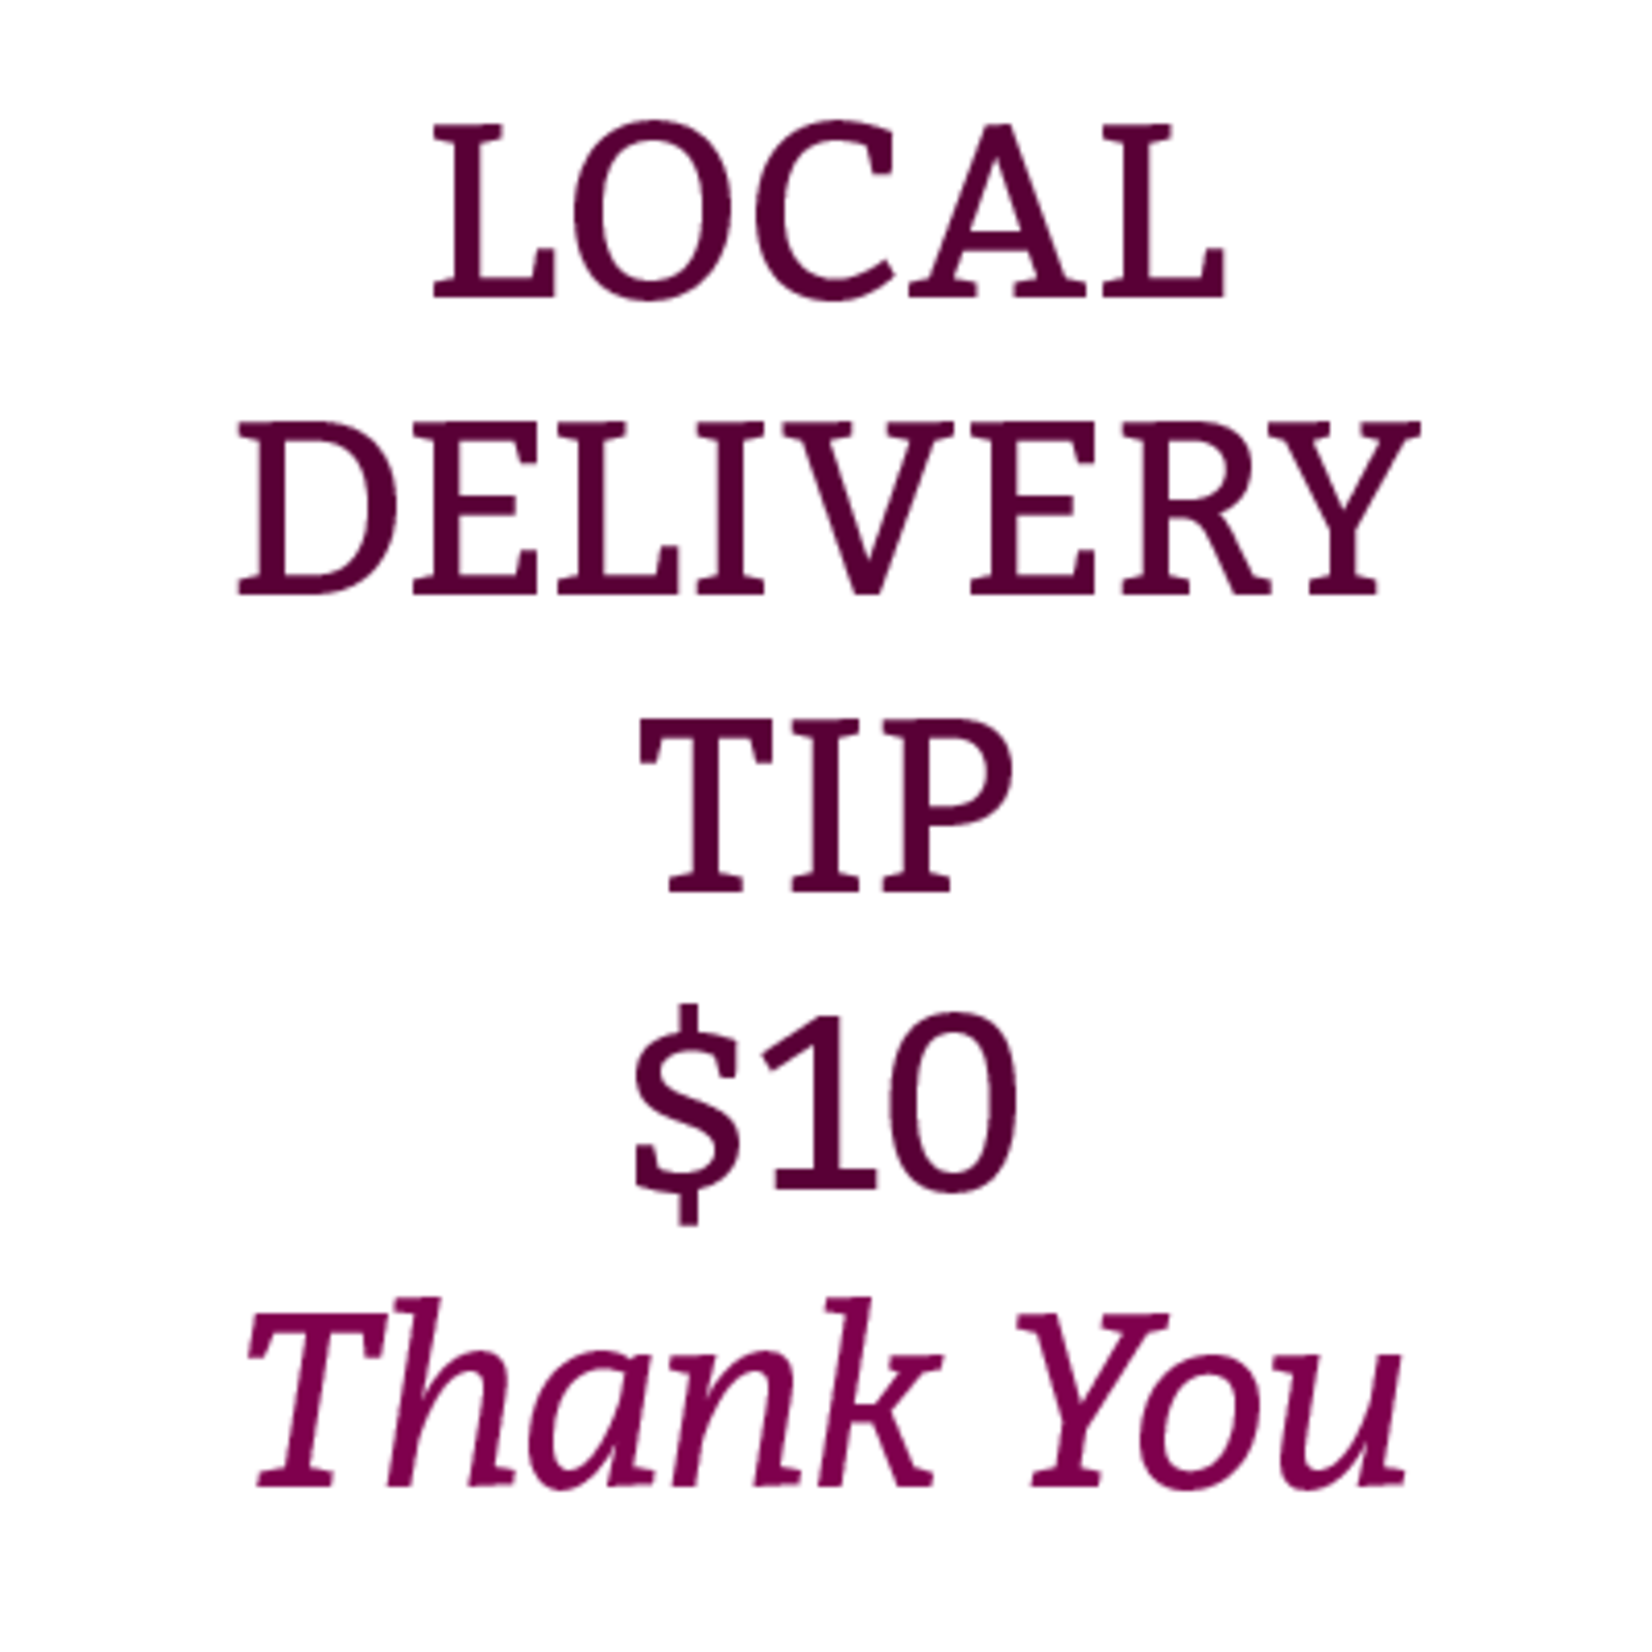 Local Delivery Tip $10